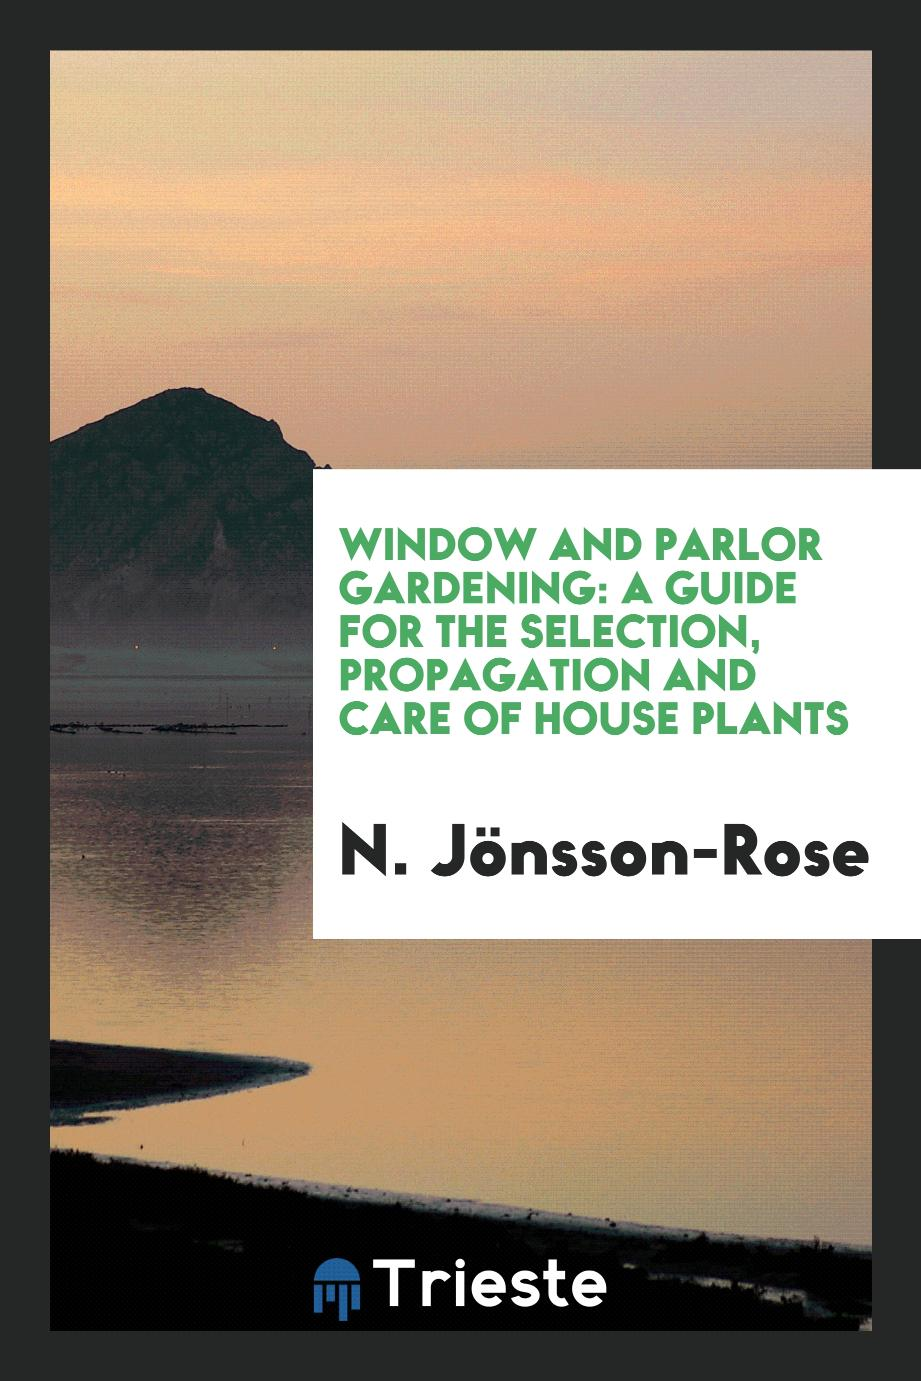 Window and Parlor Gardening: A Guide for the Selection, Propagation and Care of House Plants